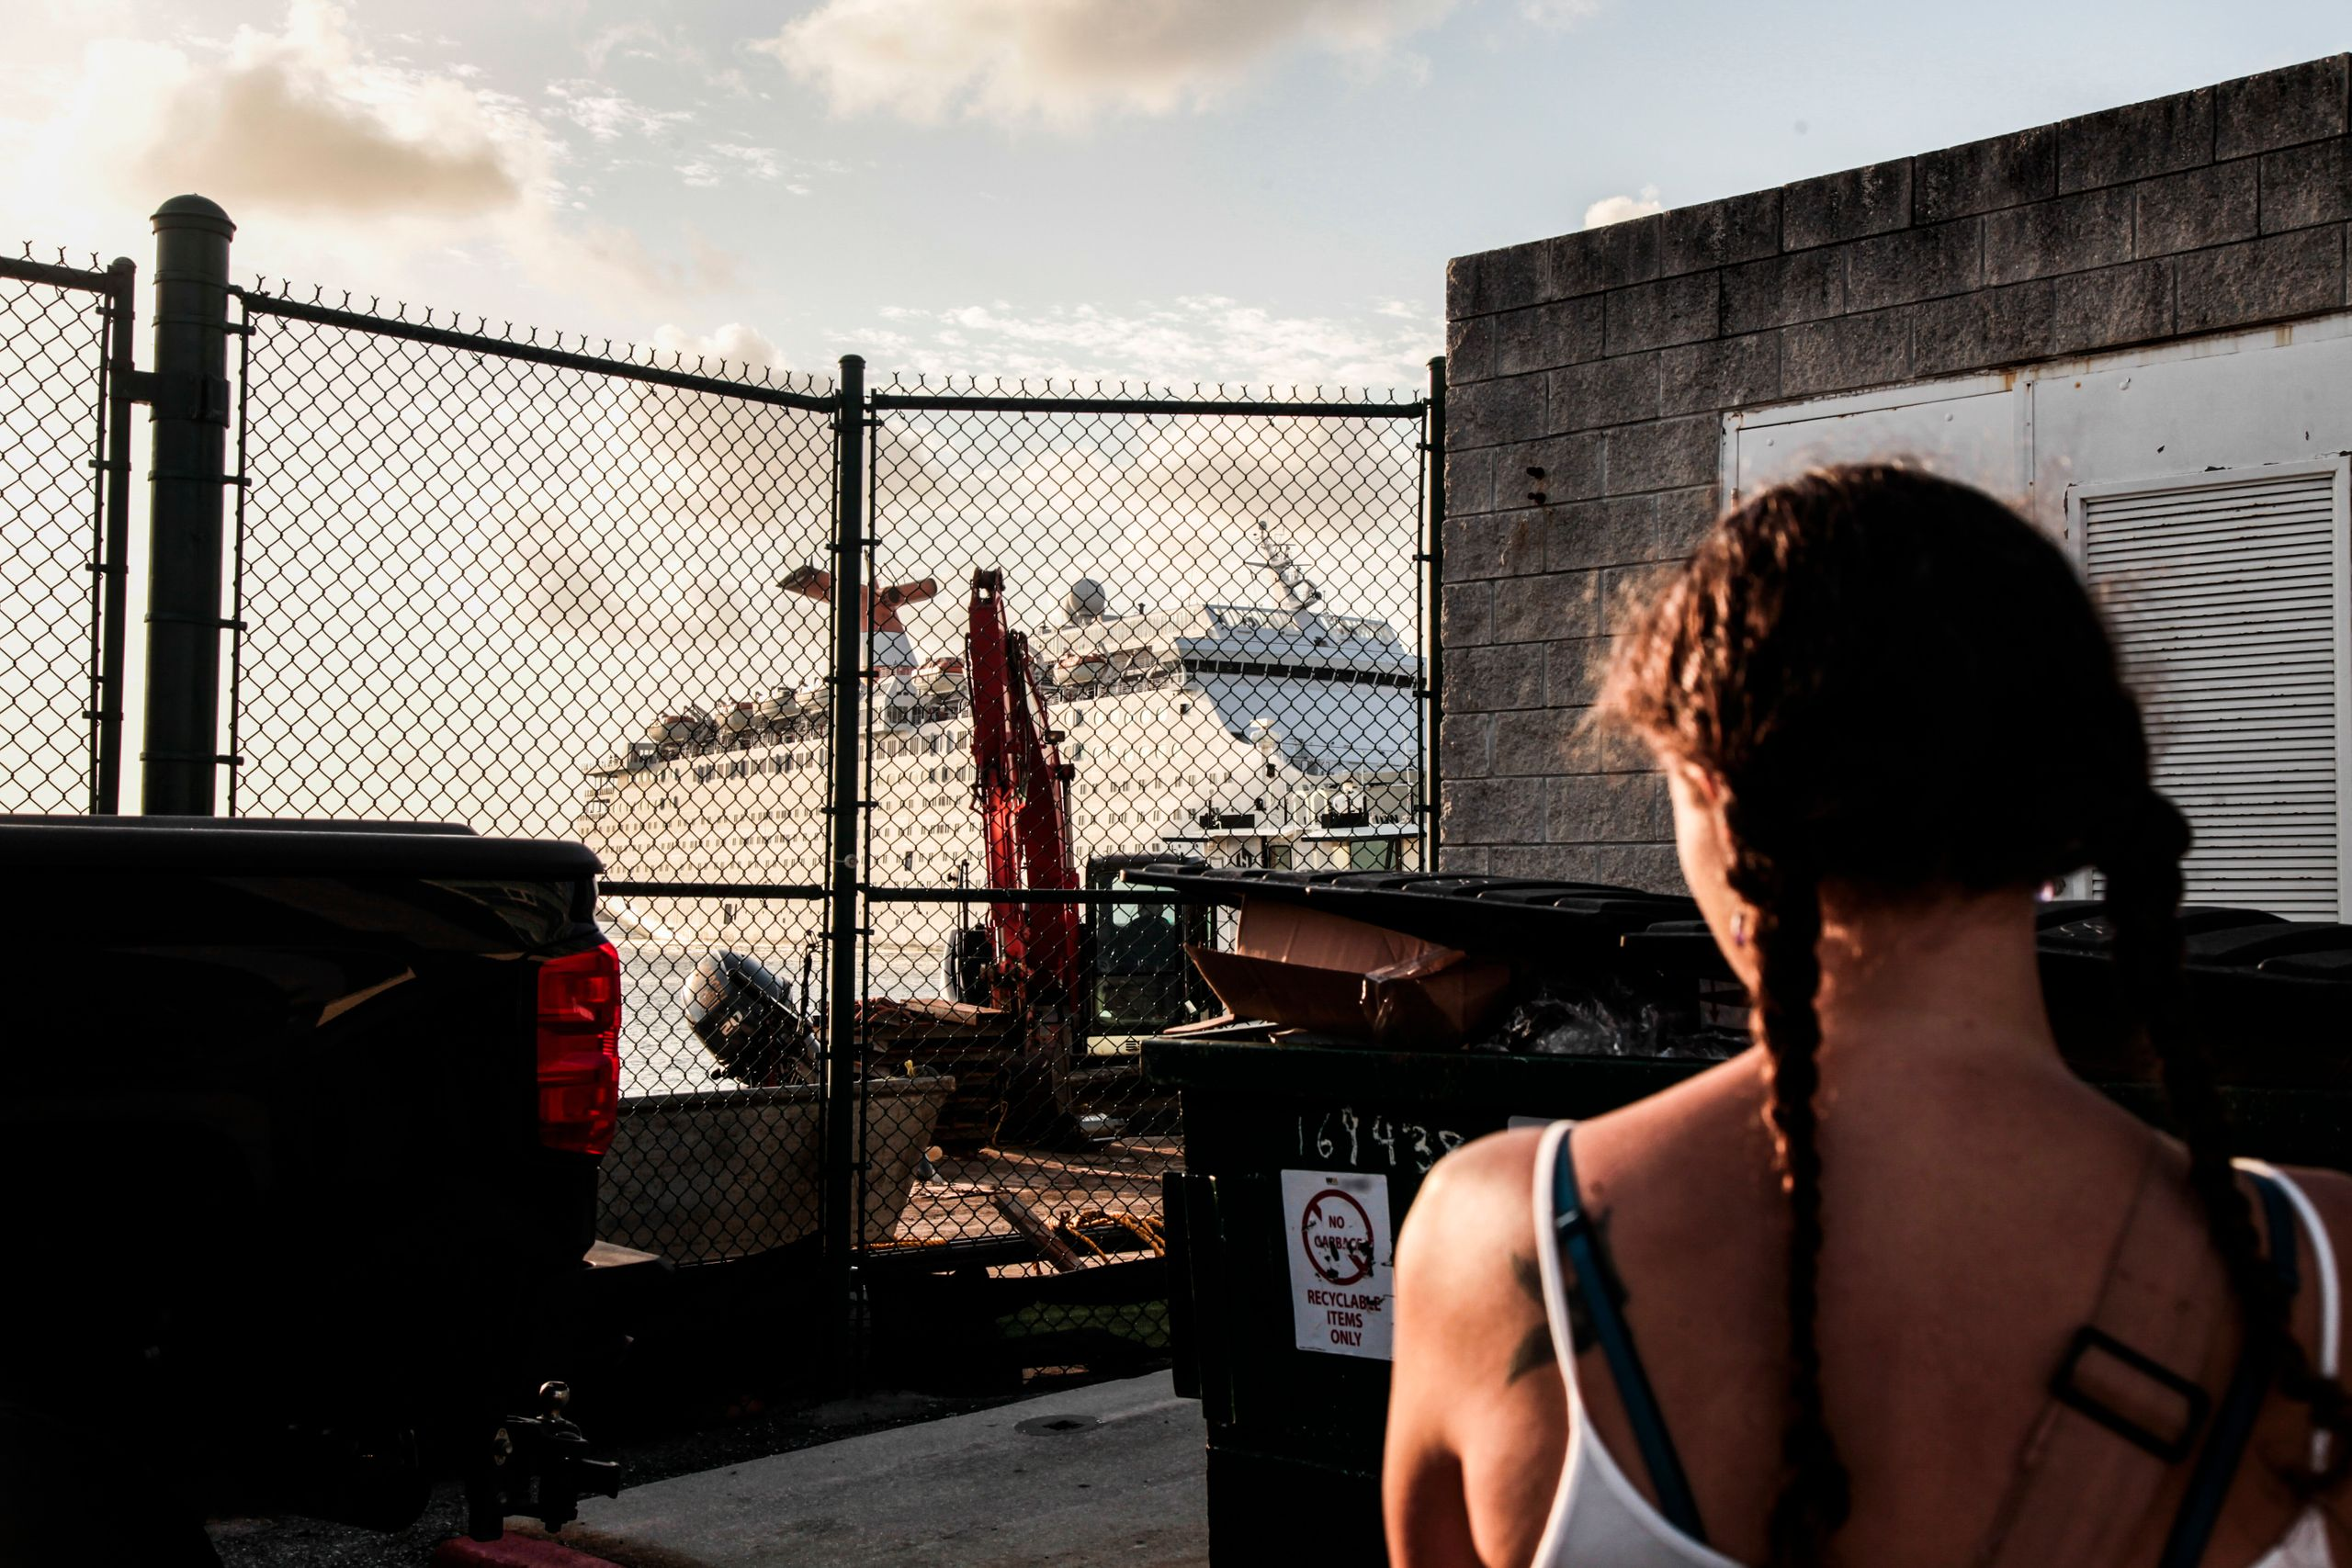 Sarah Renee Oźlański stands to watch the Grand Celebration start to dock. Oźlański waits for her Bahamian friend and infant t